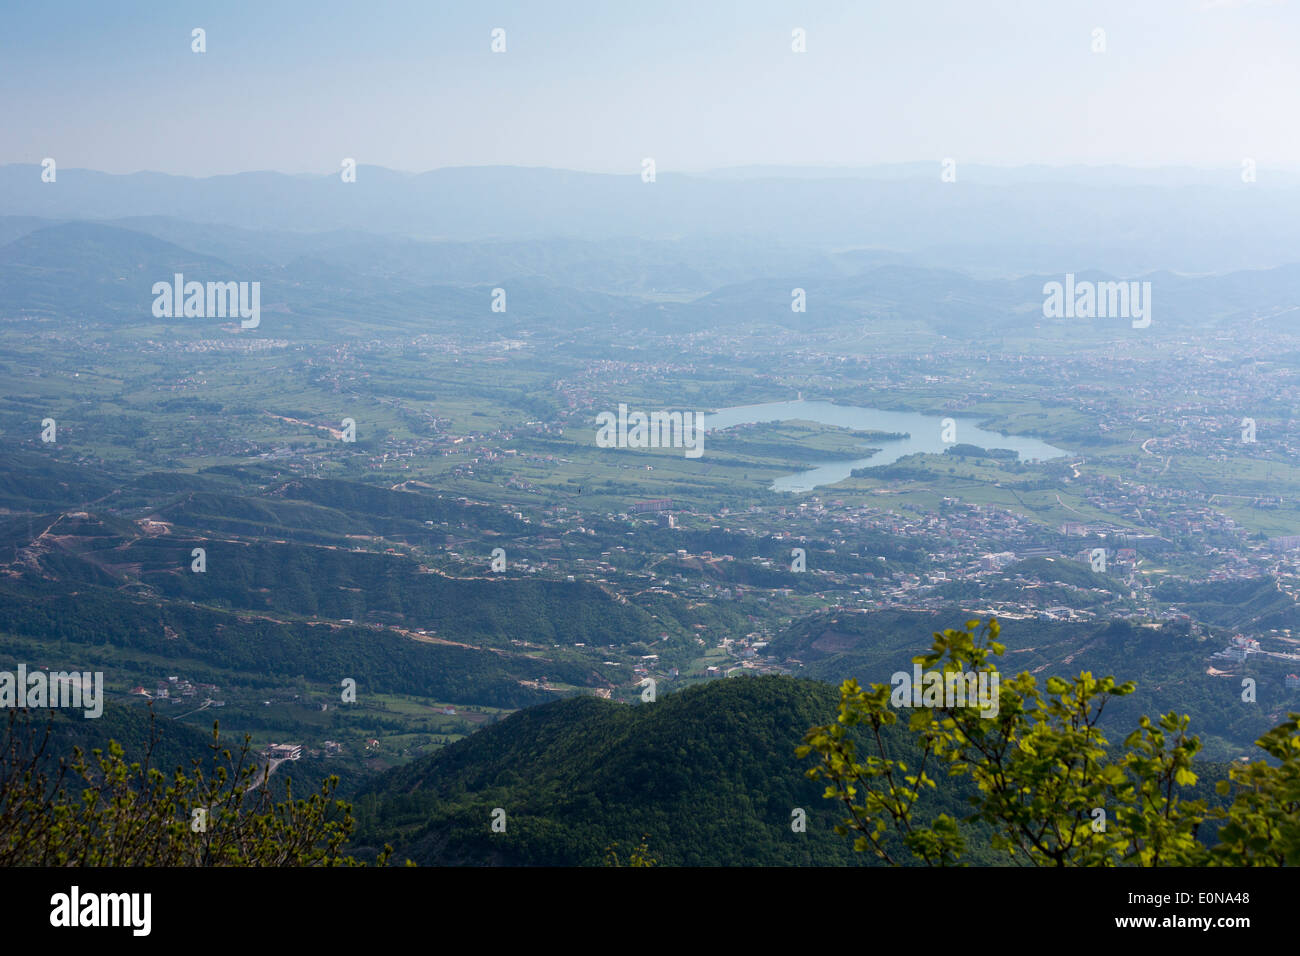 aerial view from Mount Dayti of  suburbs of Tirana, Albania - Stock Image